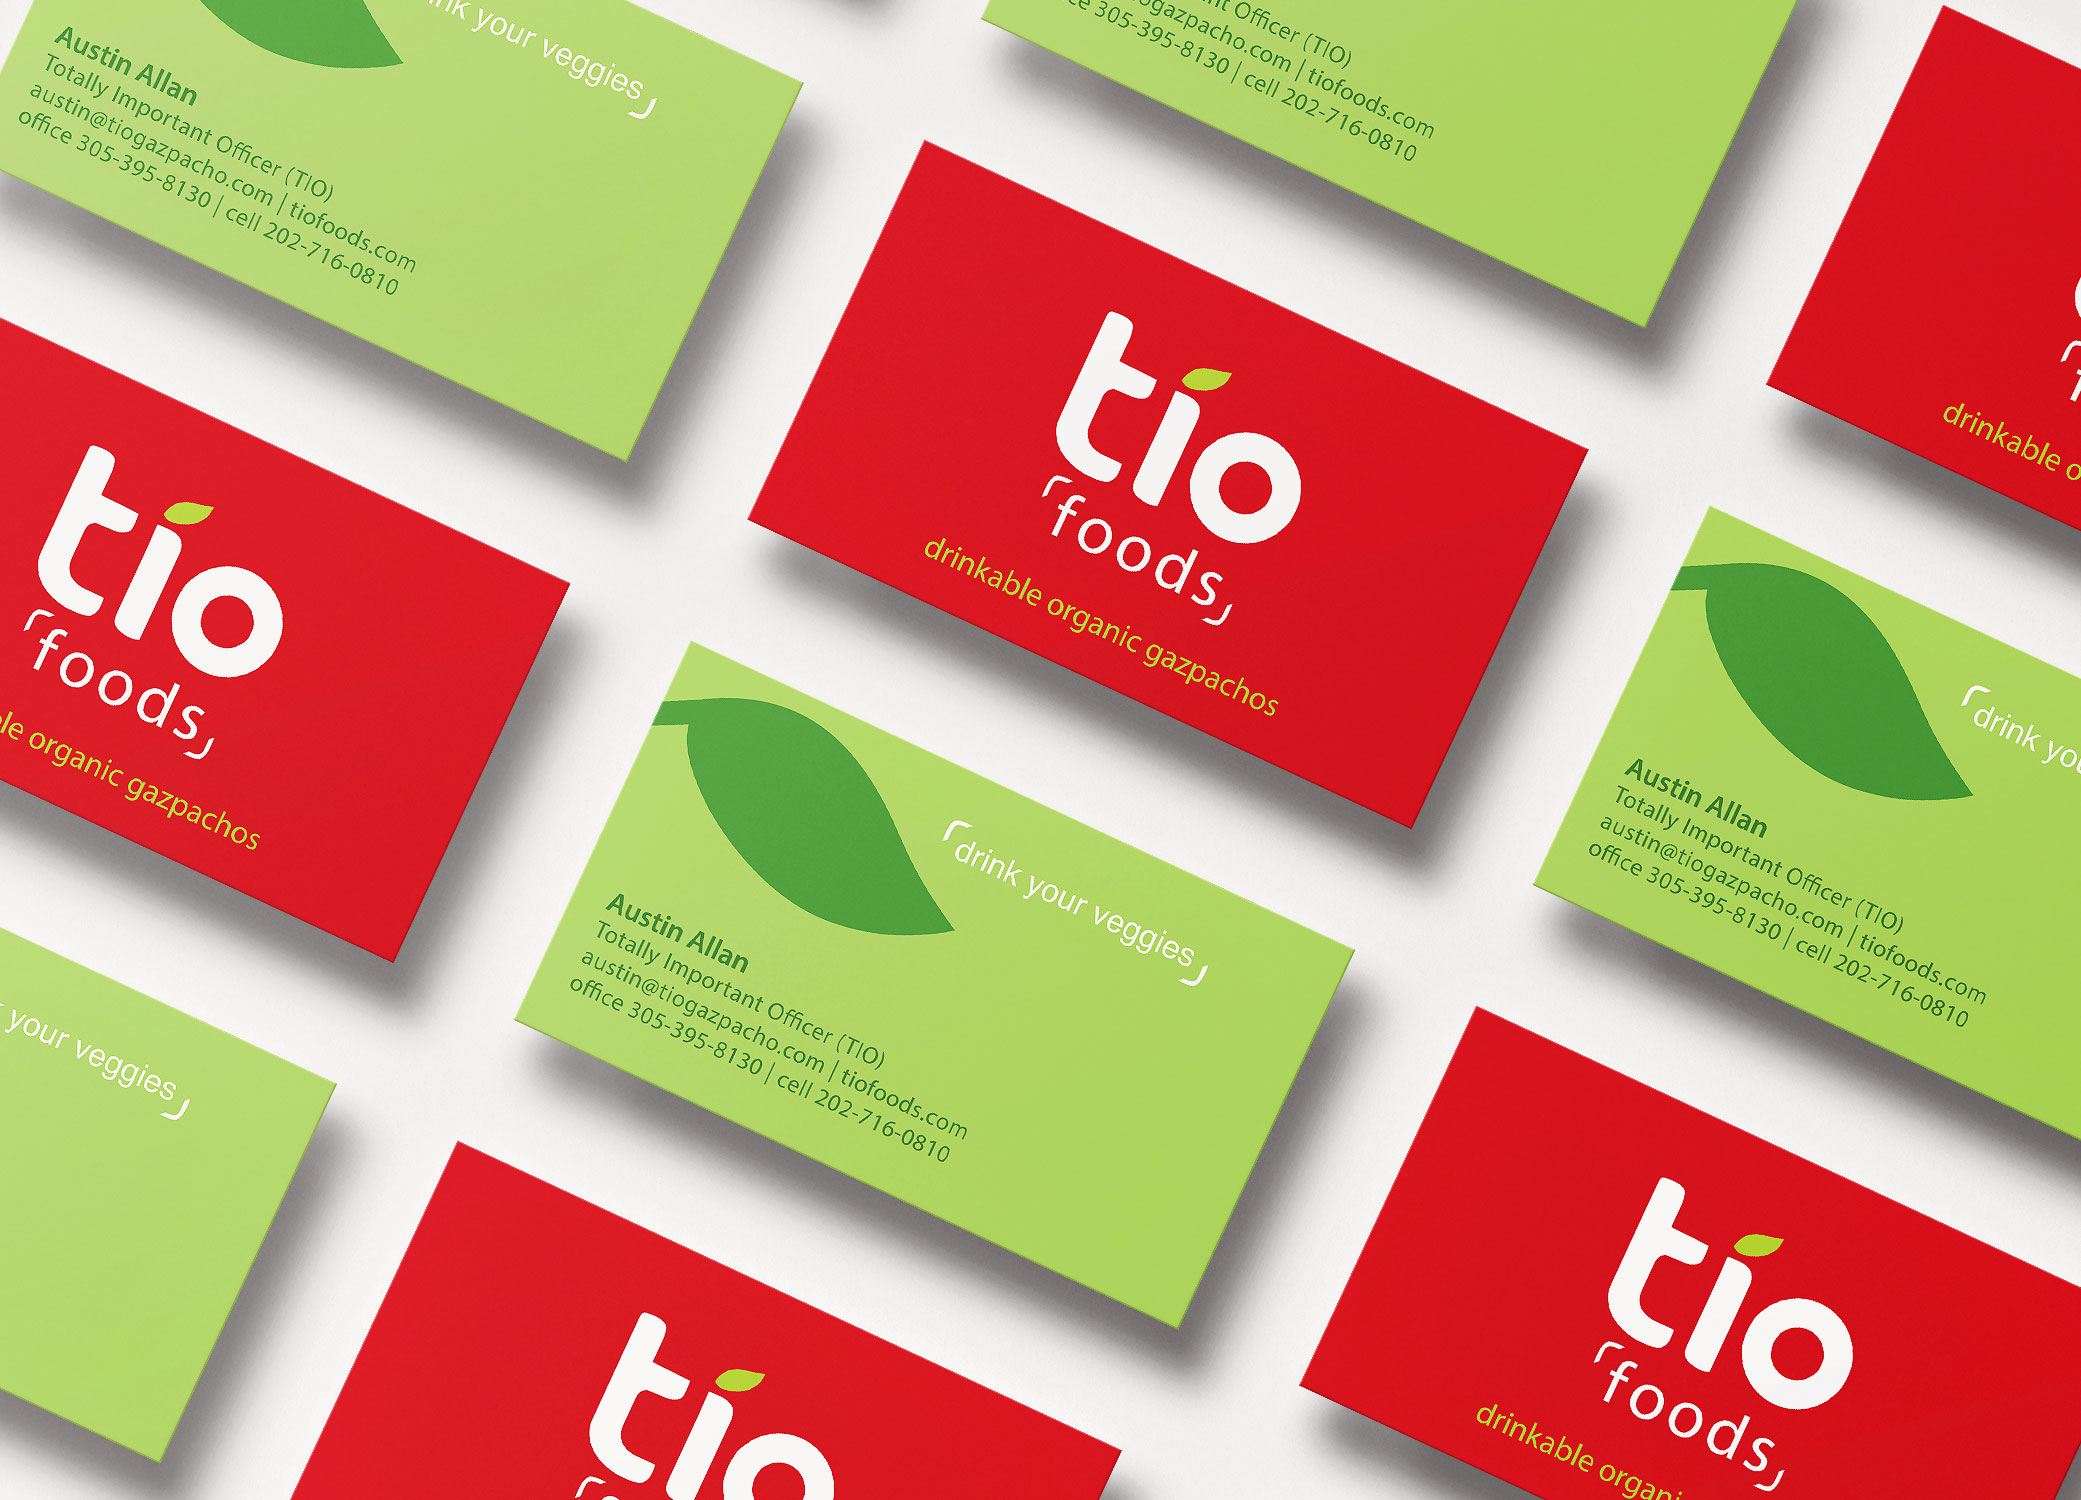 Tio Gazpacho red and green business cards arranged in slanted rows to show front and back.